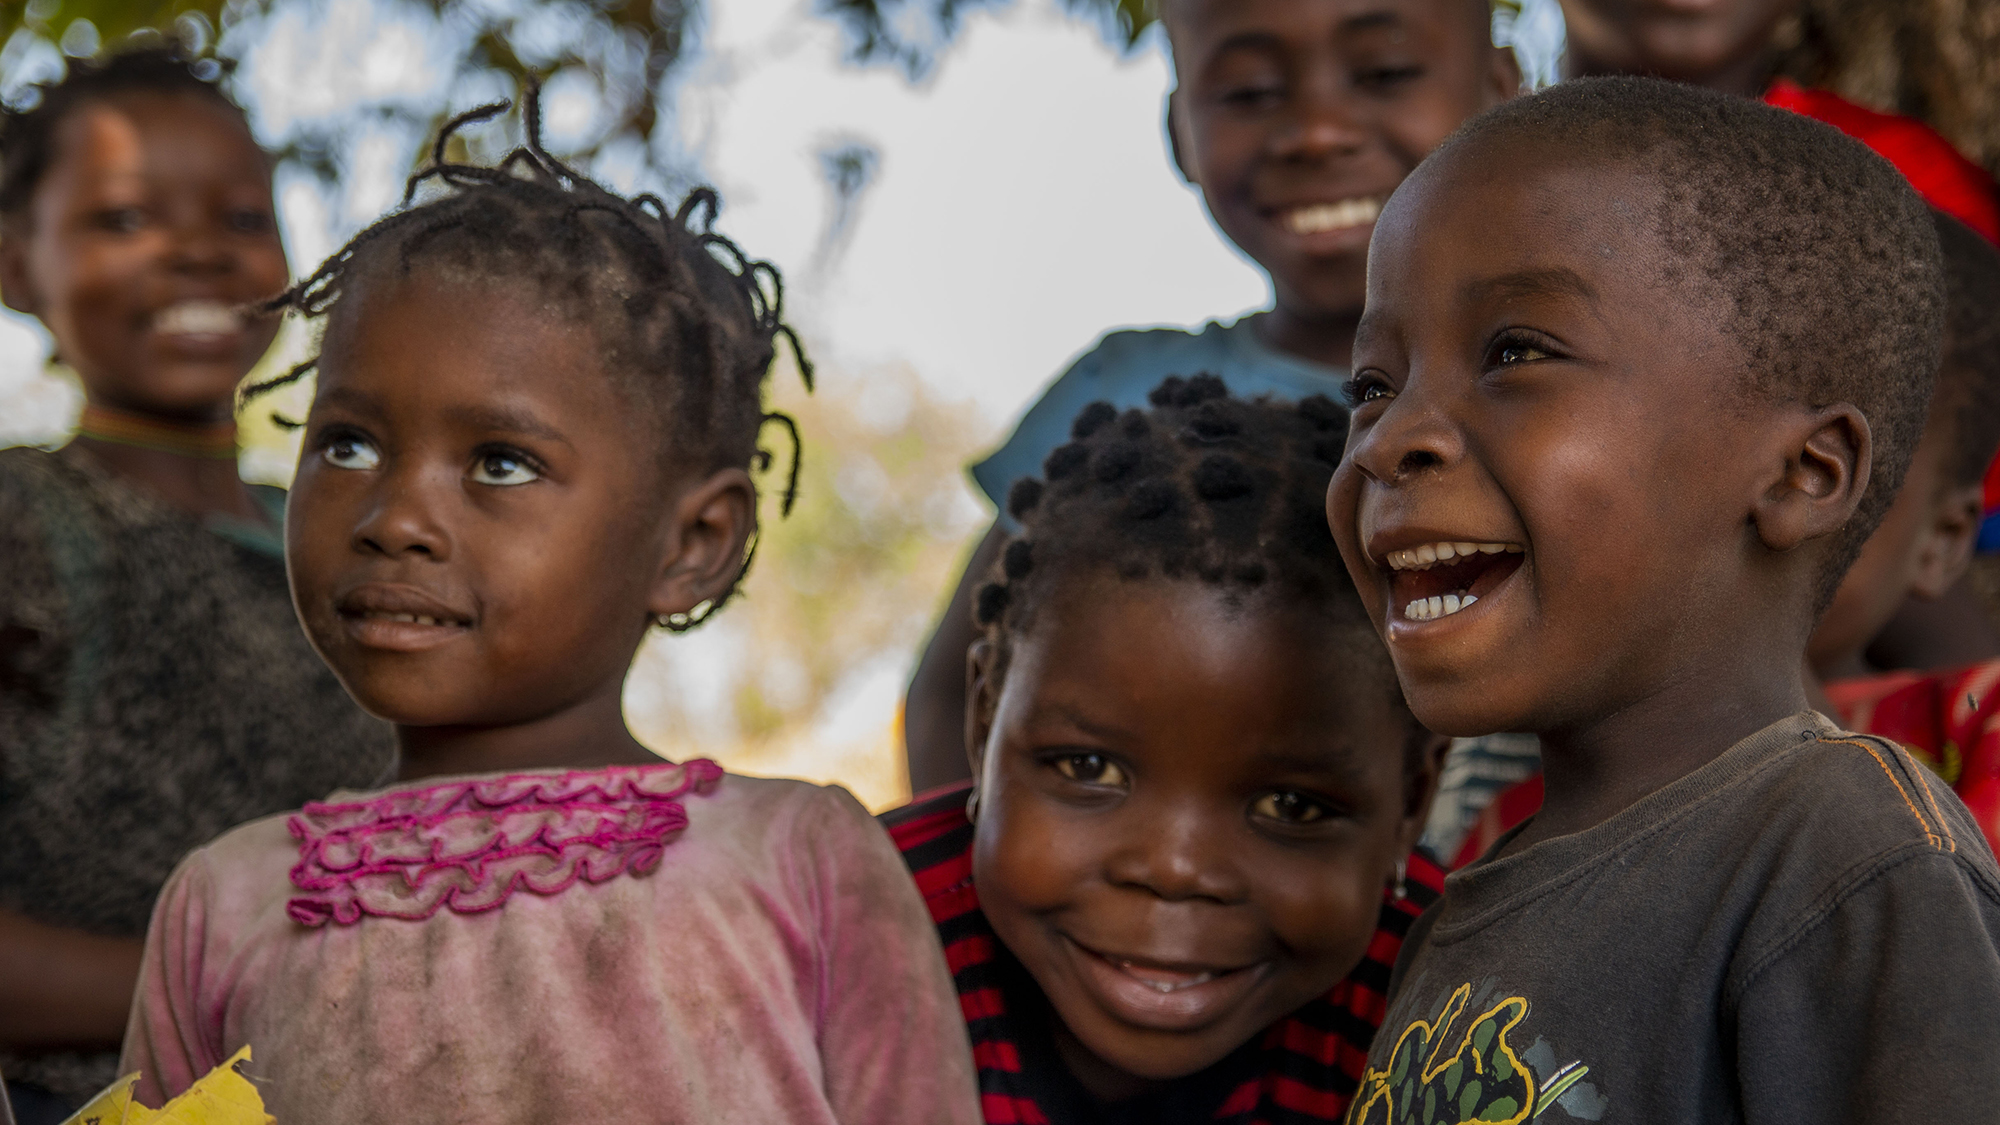 A group of children in Mozambique.